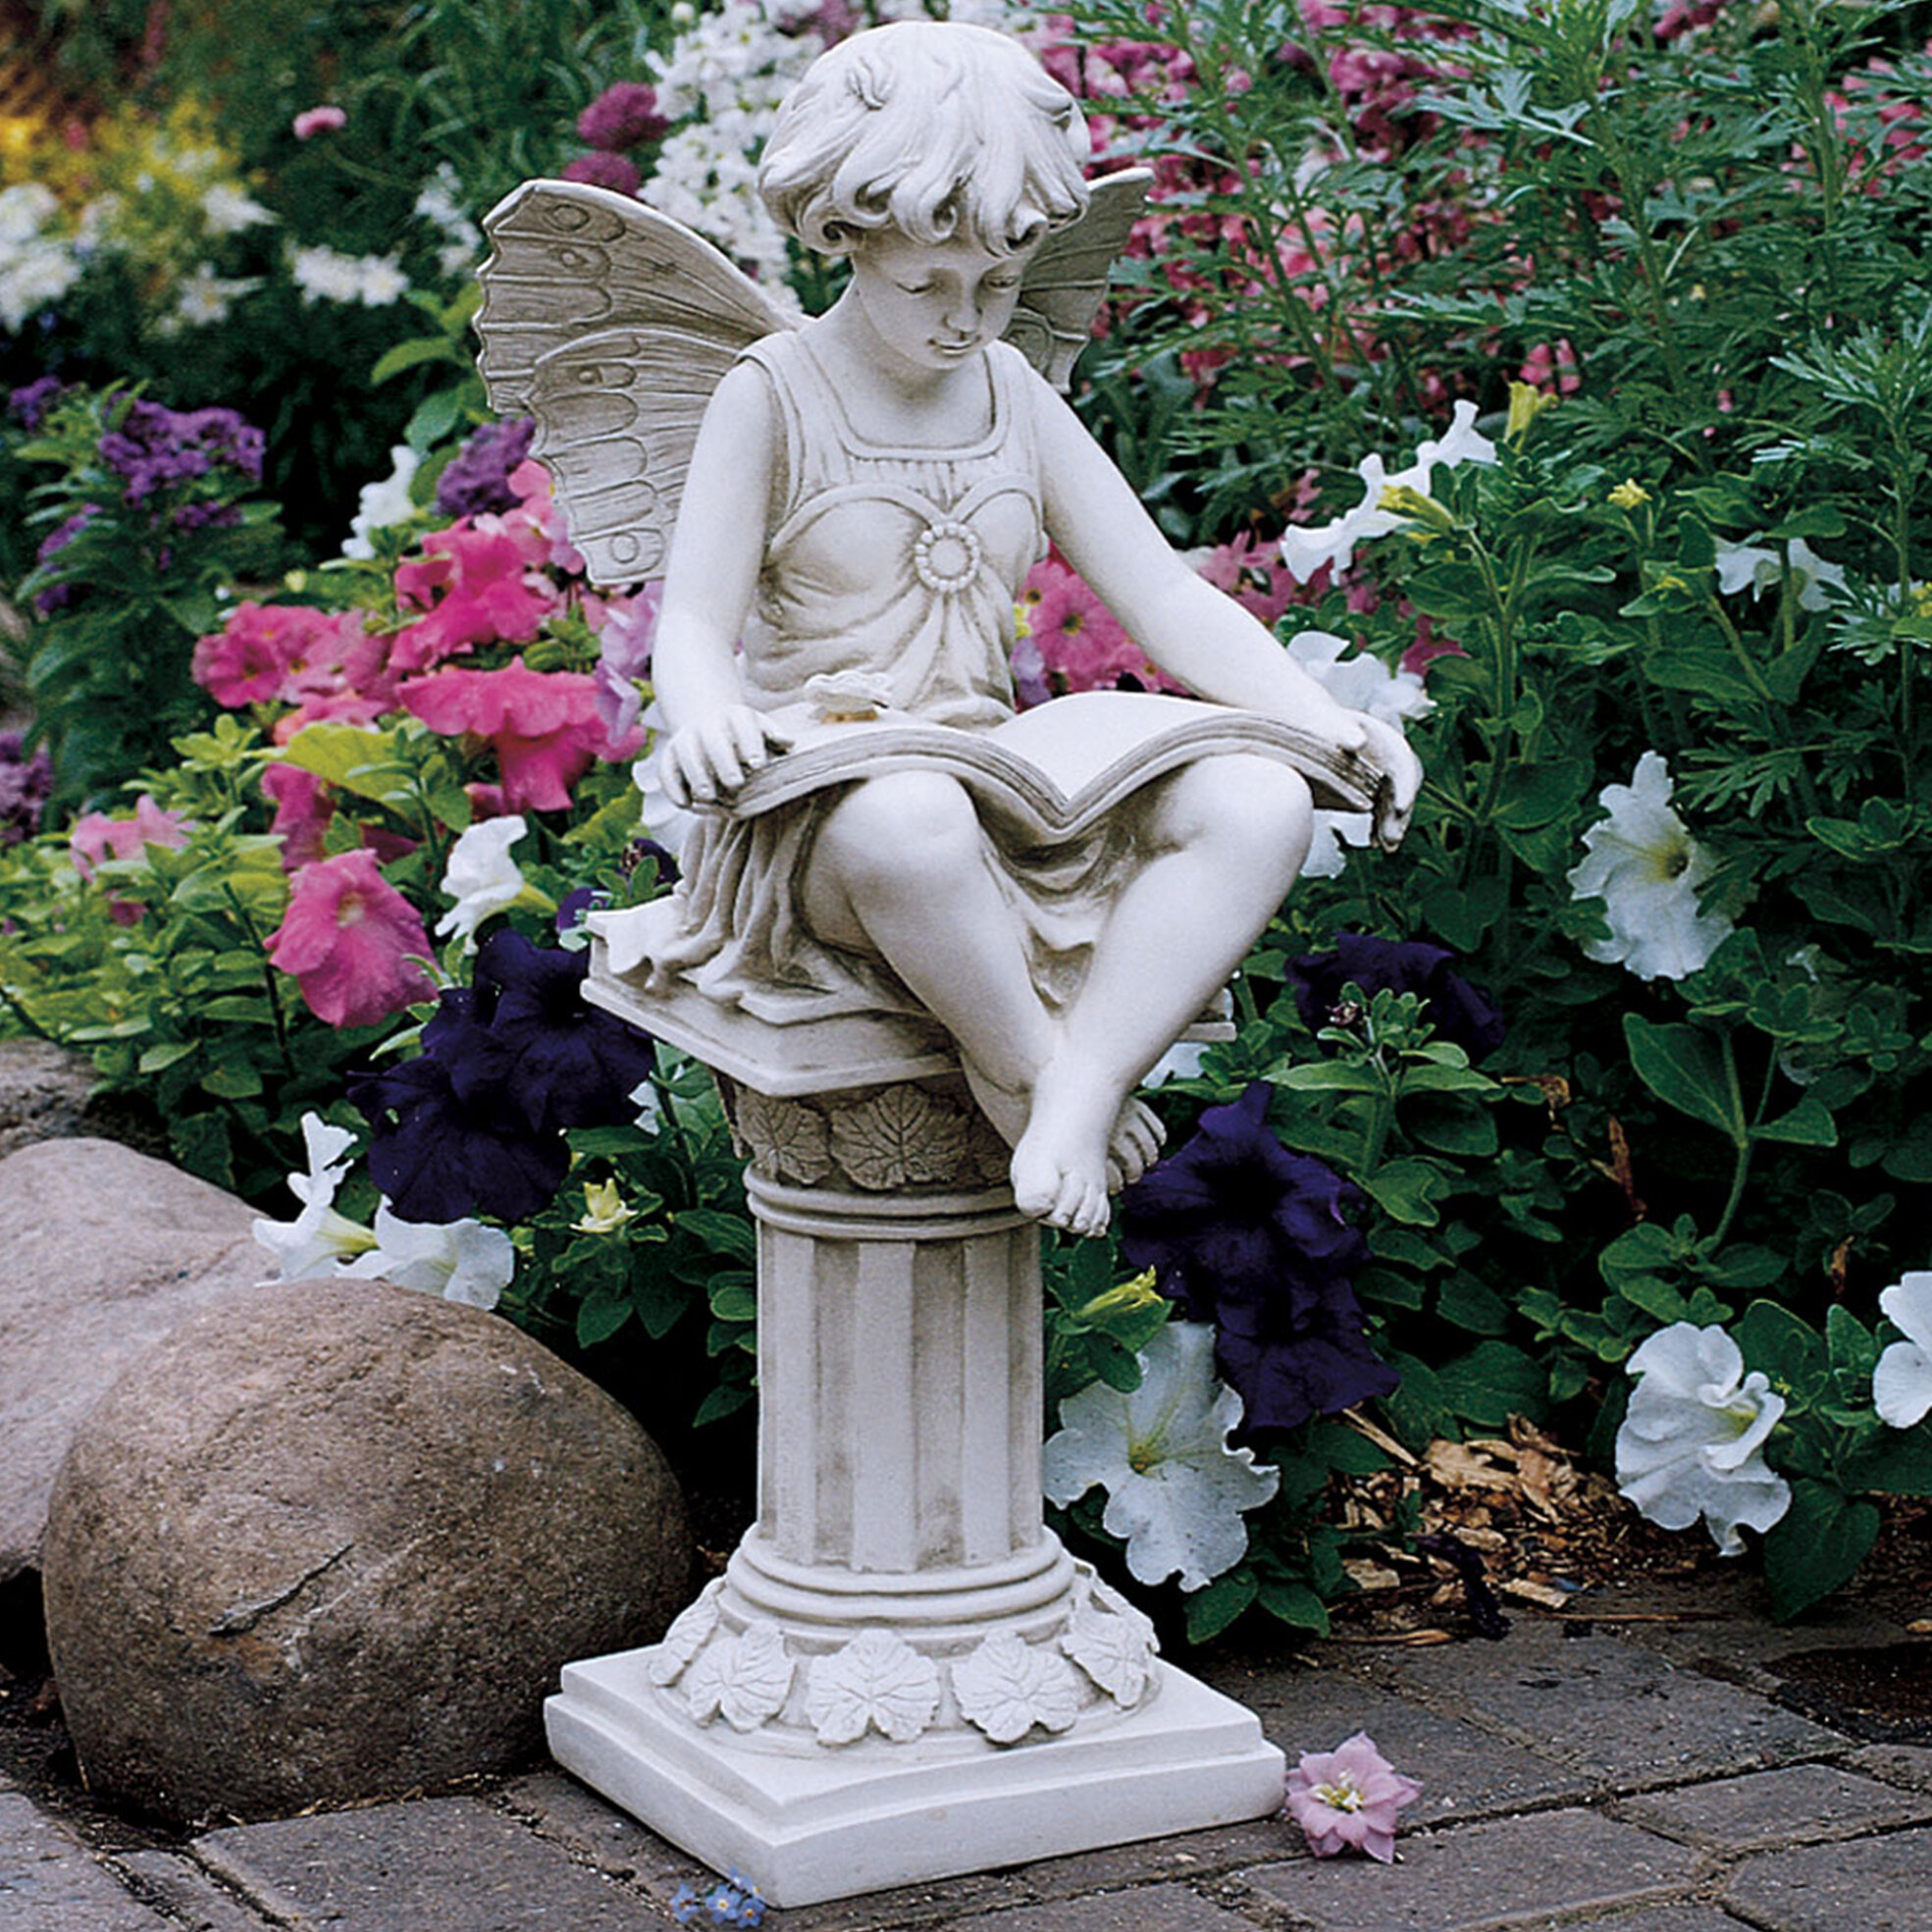 Charmant Design Toscano The British Reading Fairy Statue U0026 Reviews | Wayfair